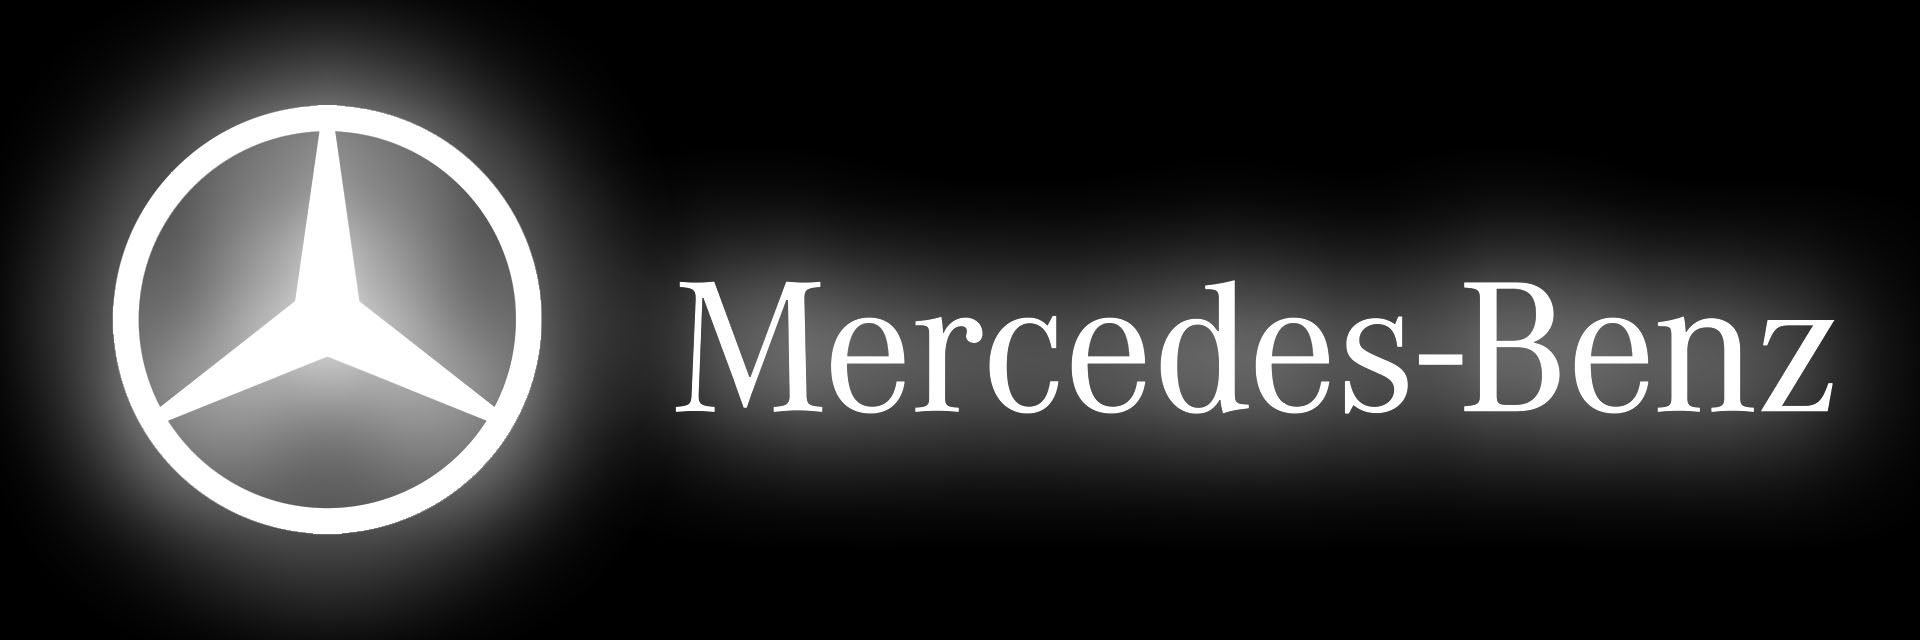 logo mercedes histoire image de symbole et embl me. Black Bedroom Furniture Sets. Home Design Ideas